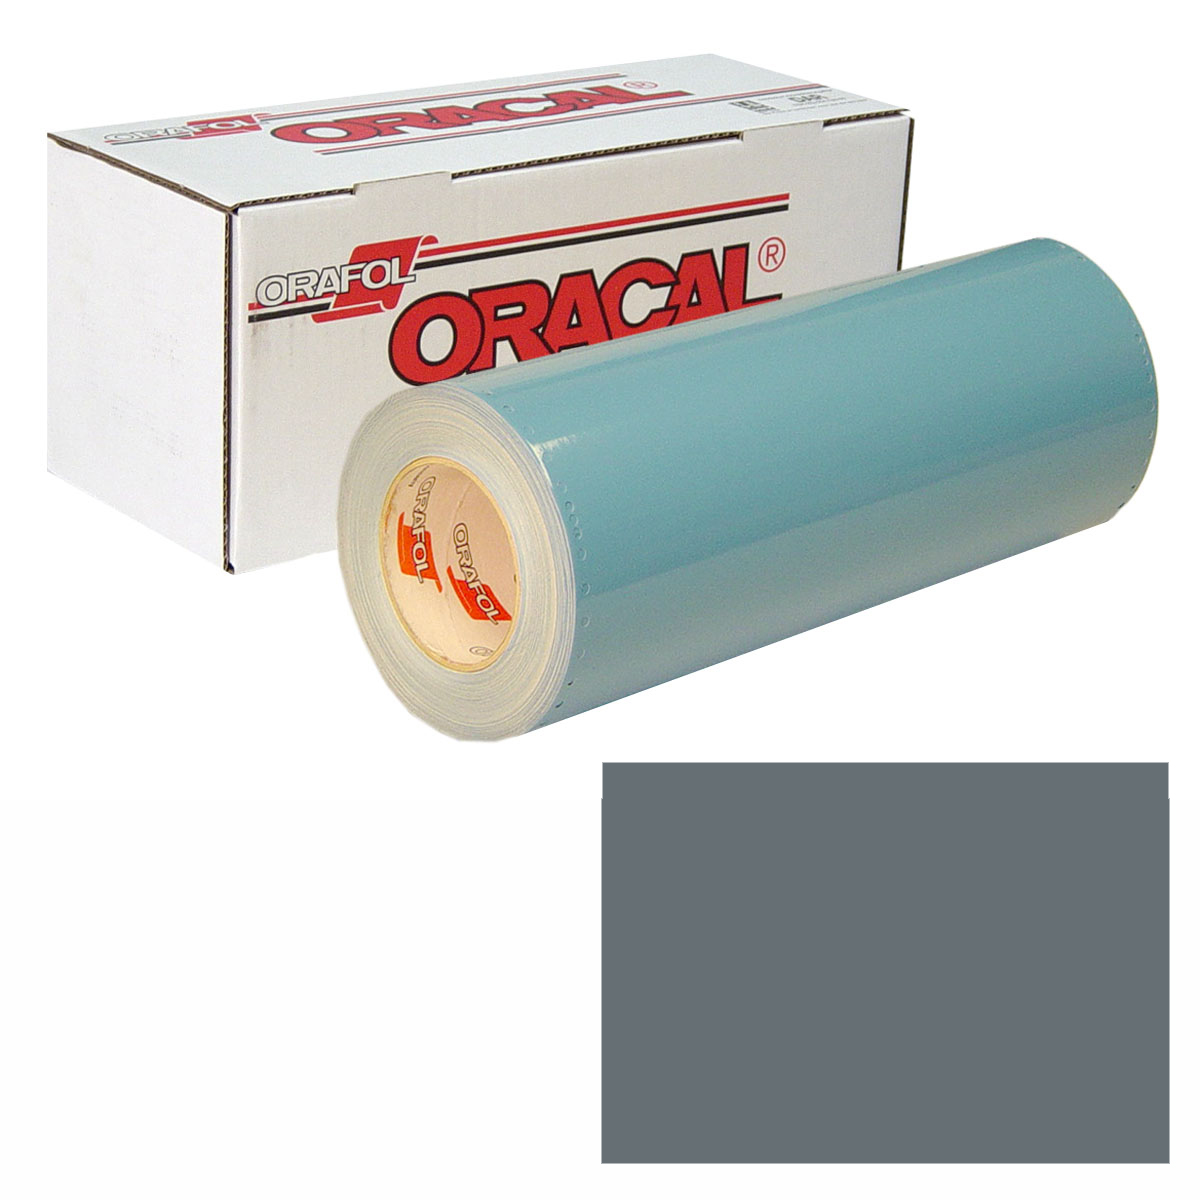 ORACAL 951 30In X 50Yd 713 Iron Grey